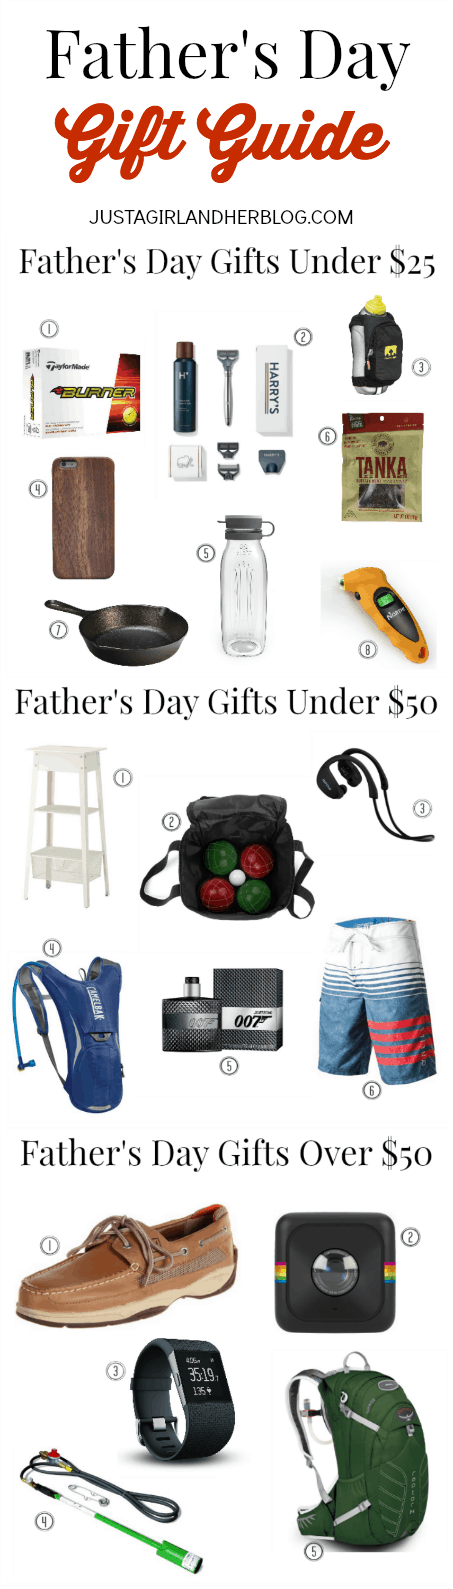 Father's Day Gift Guide 2015 | JustAGirlAndHerBlog.com